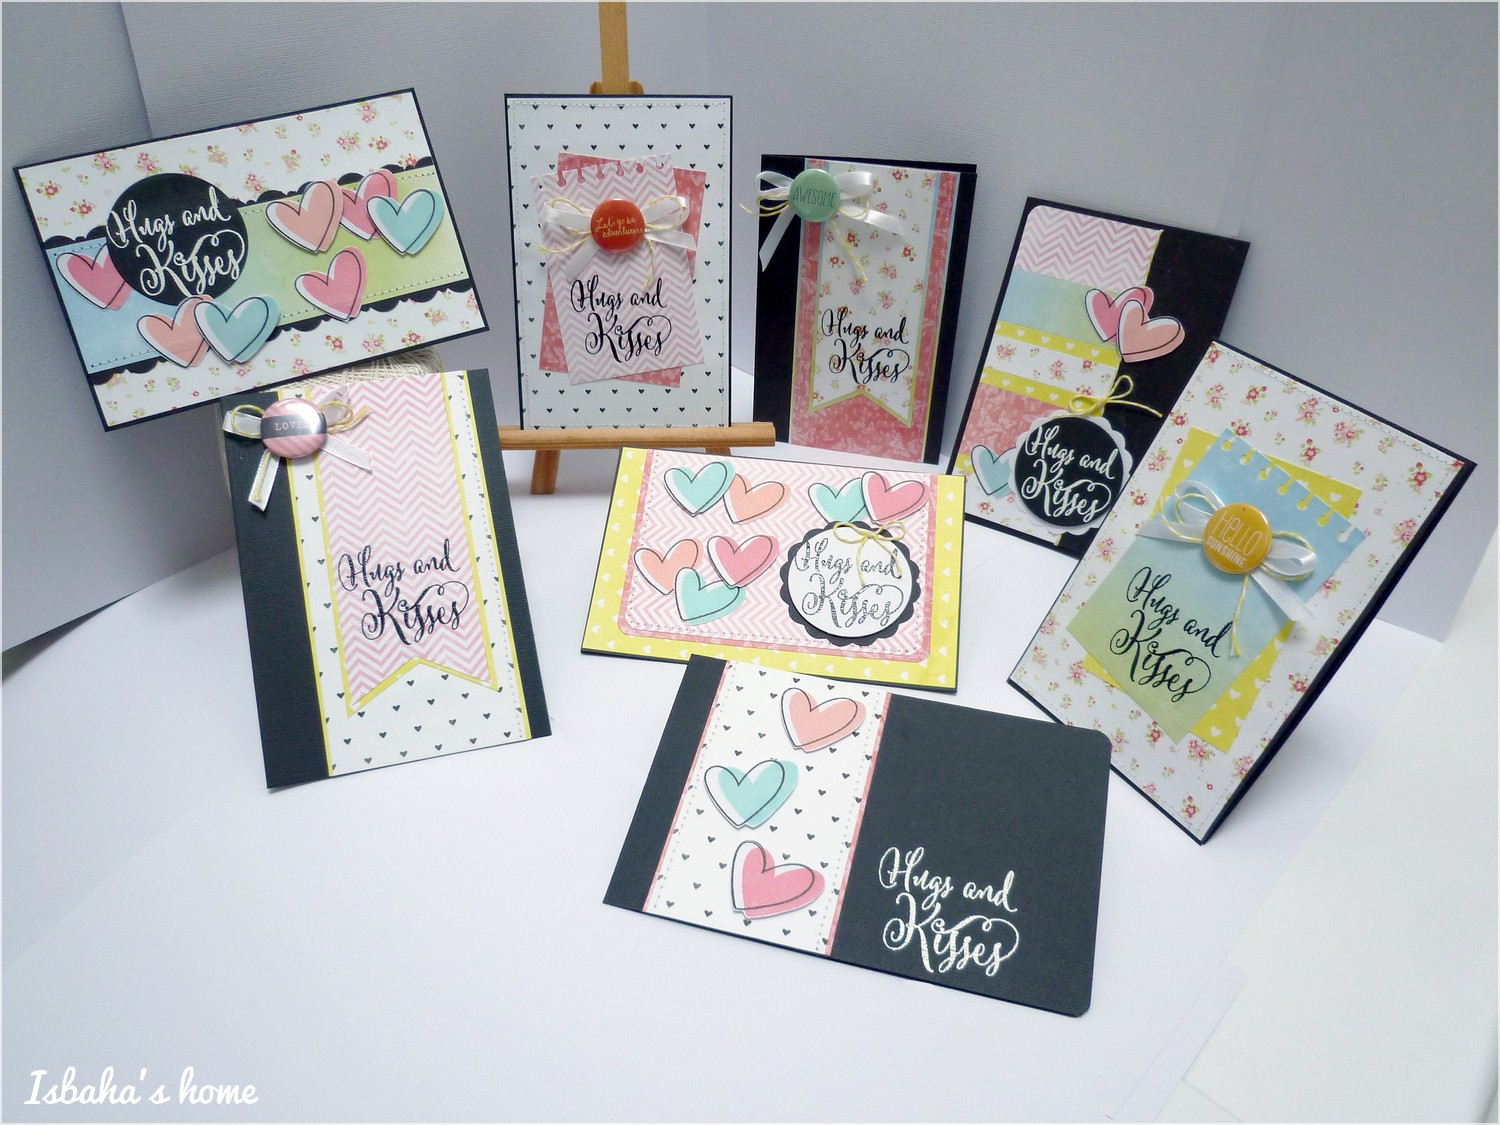 a set of cards, with sketches and cutting diagrams